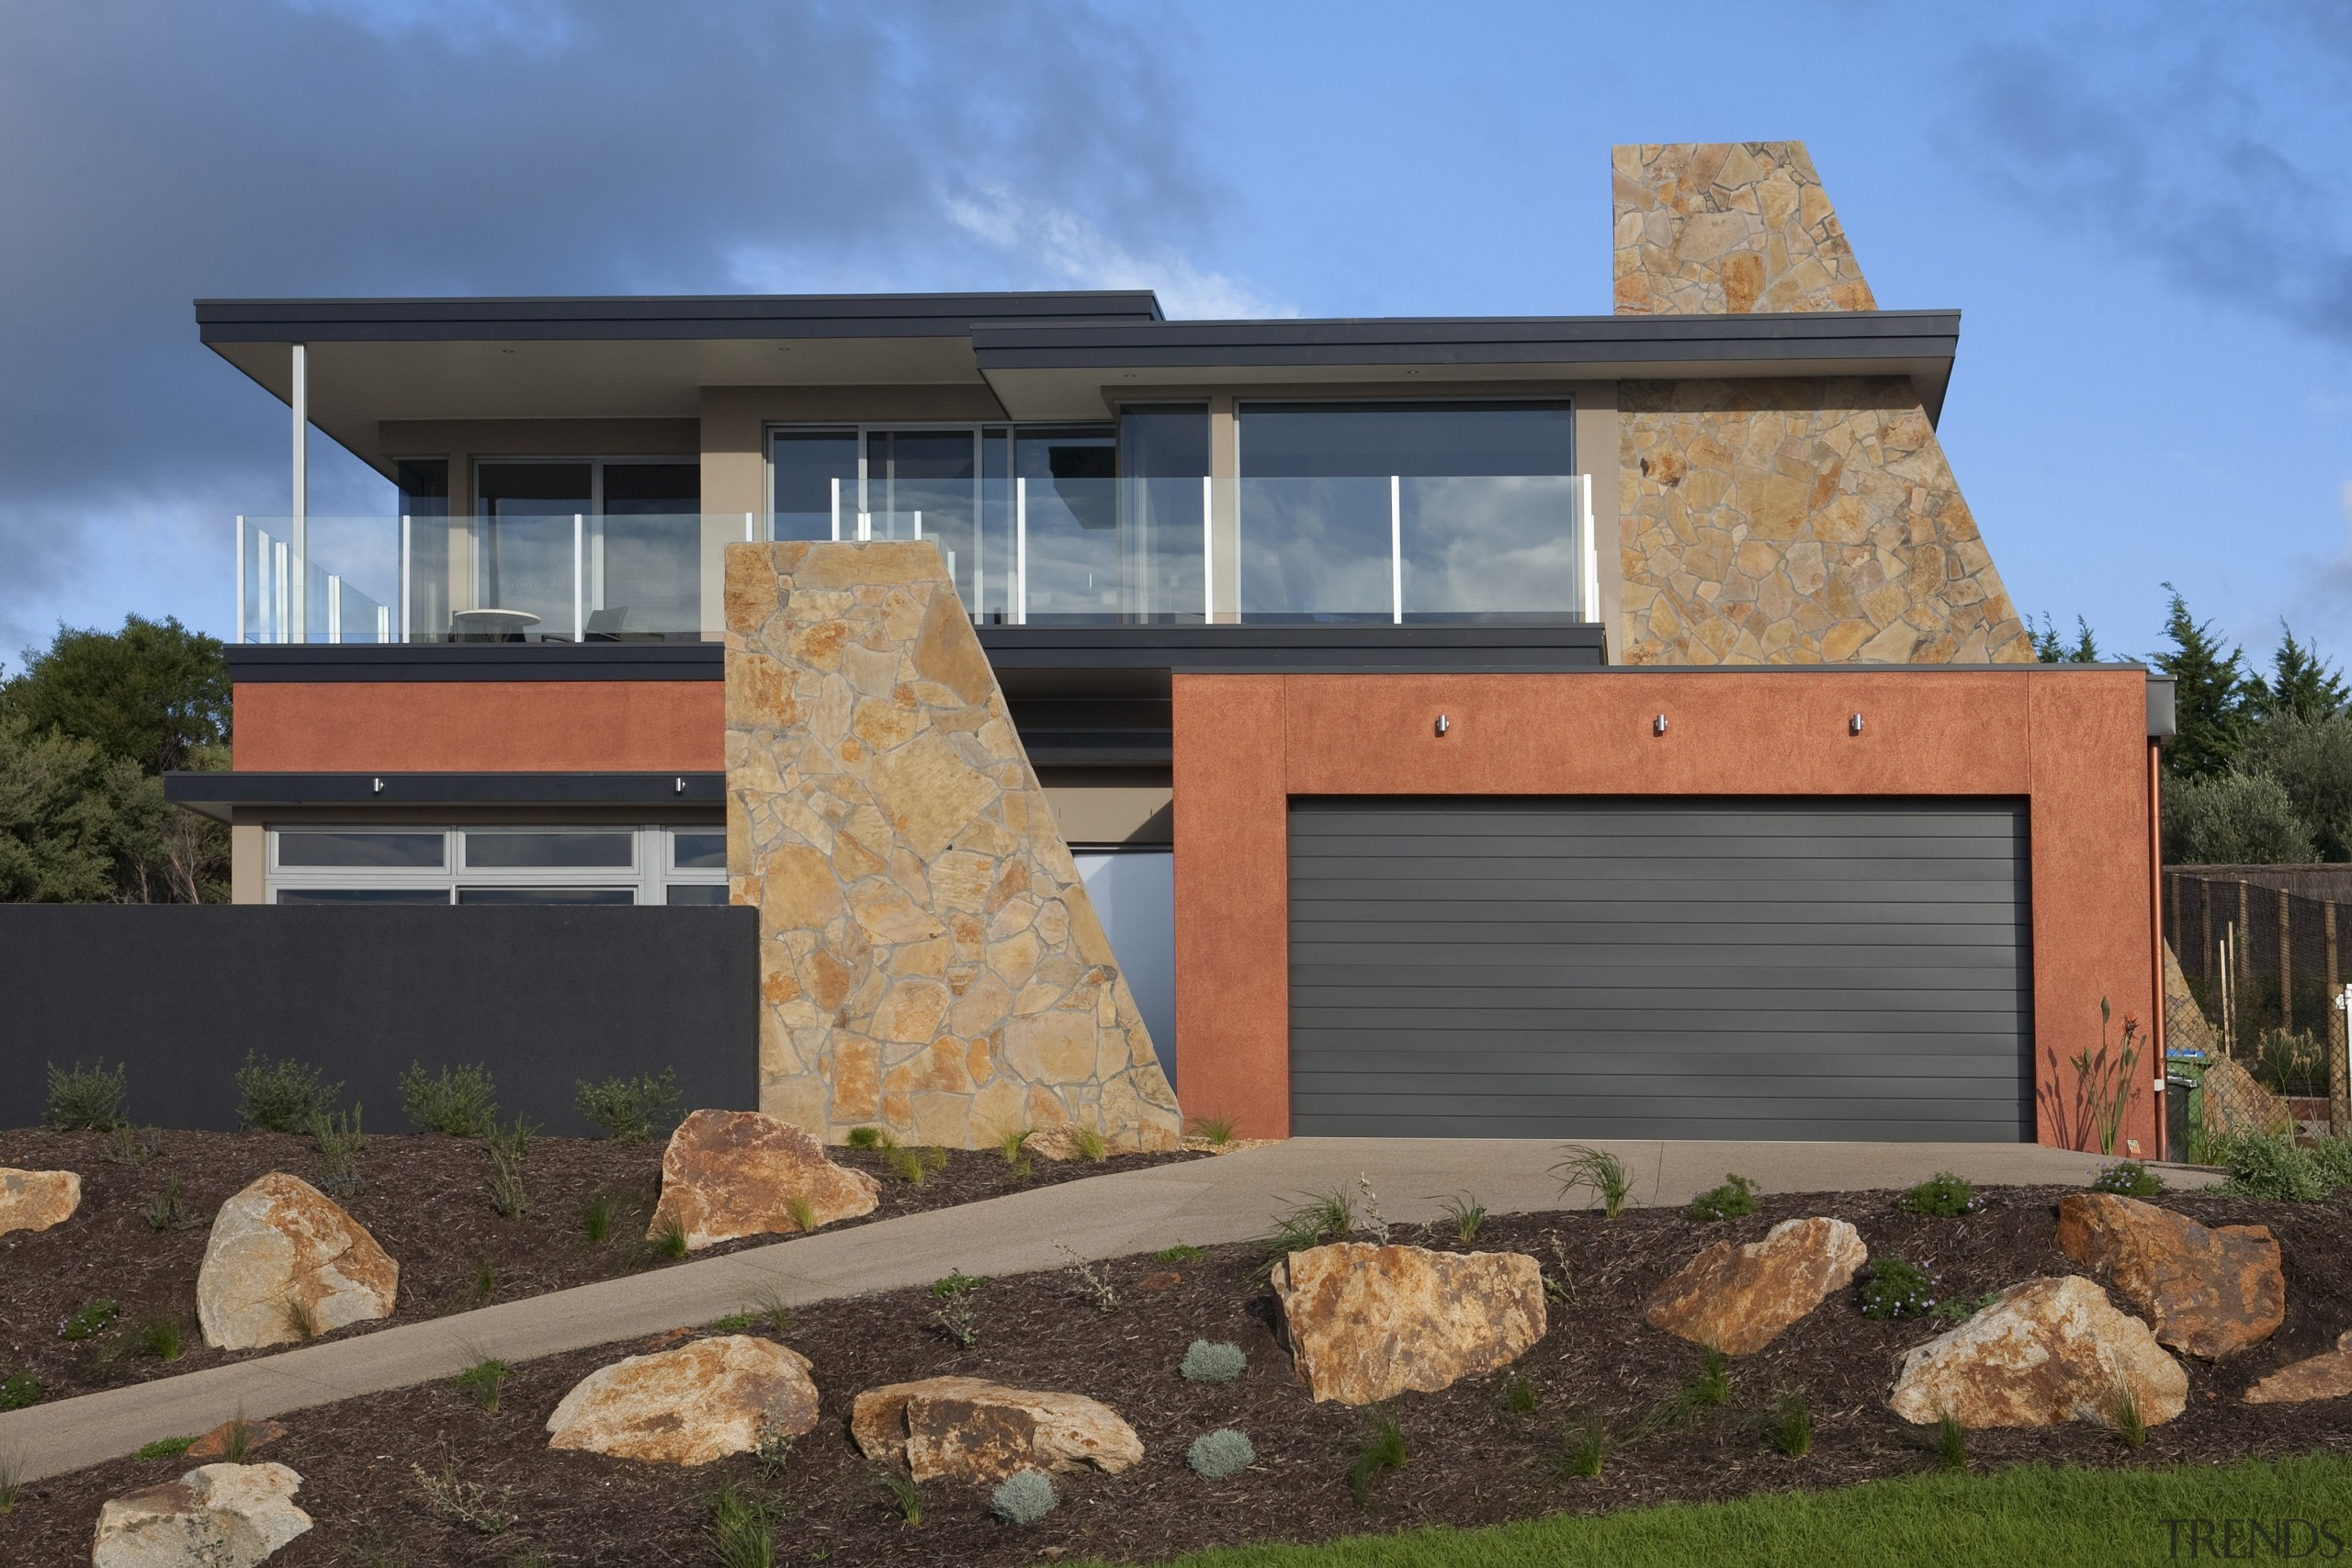 Contemporary home designed and built by Graeme Alexander architecture, building, elevation, facade, home, house, property, real estate, residential area, siding, window